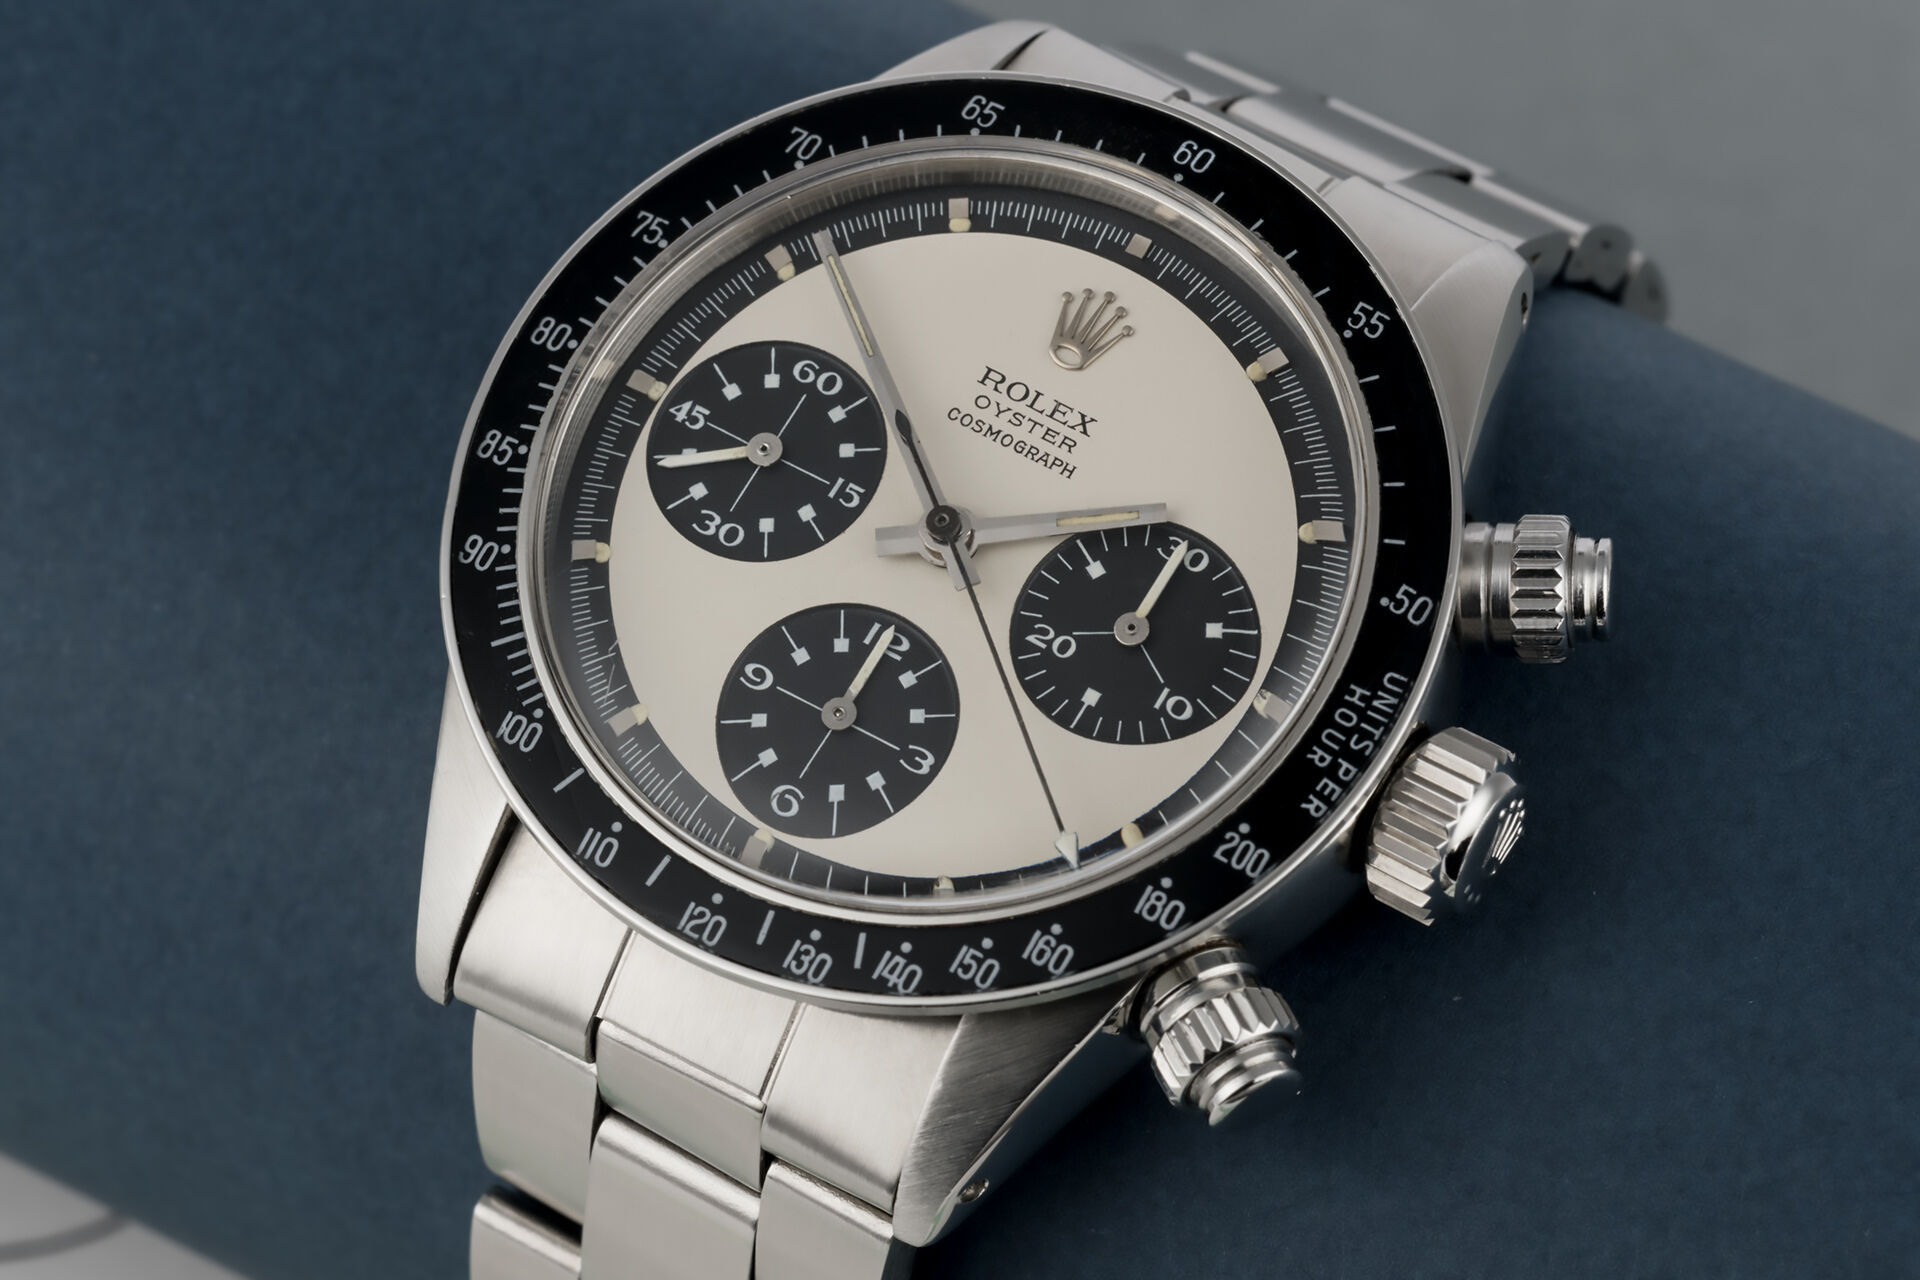 ref 6263 | Extremely Rare | Rolex Cosmograph Daytona